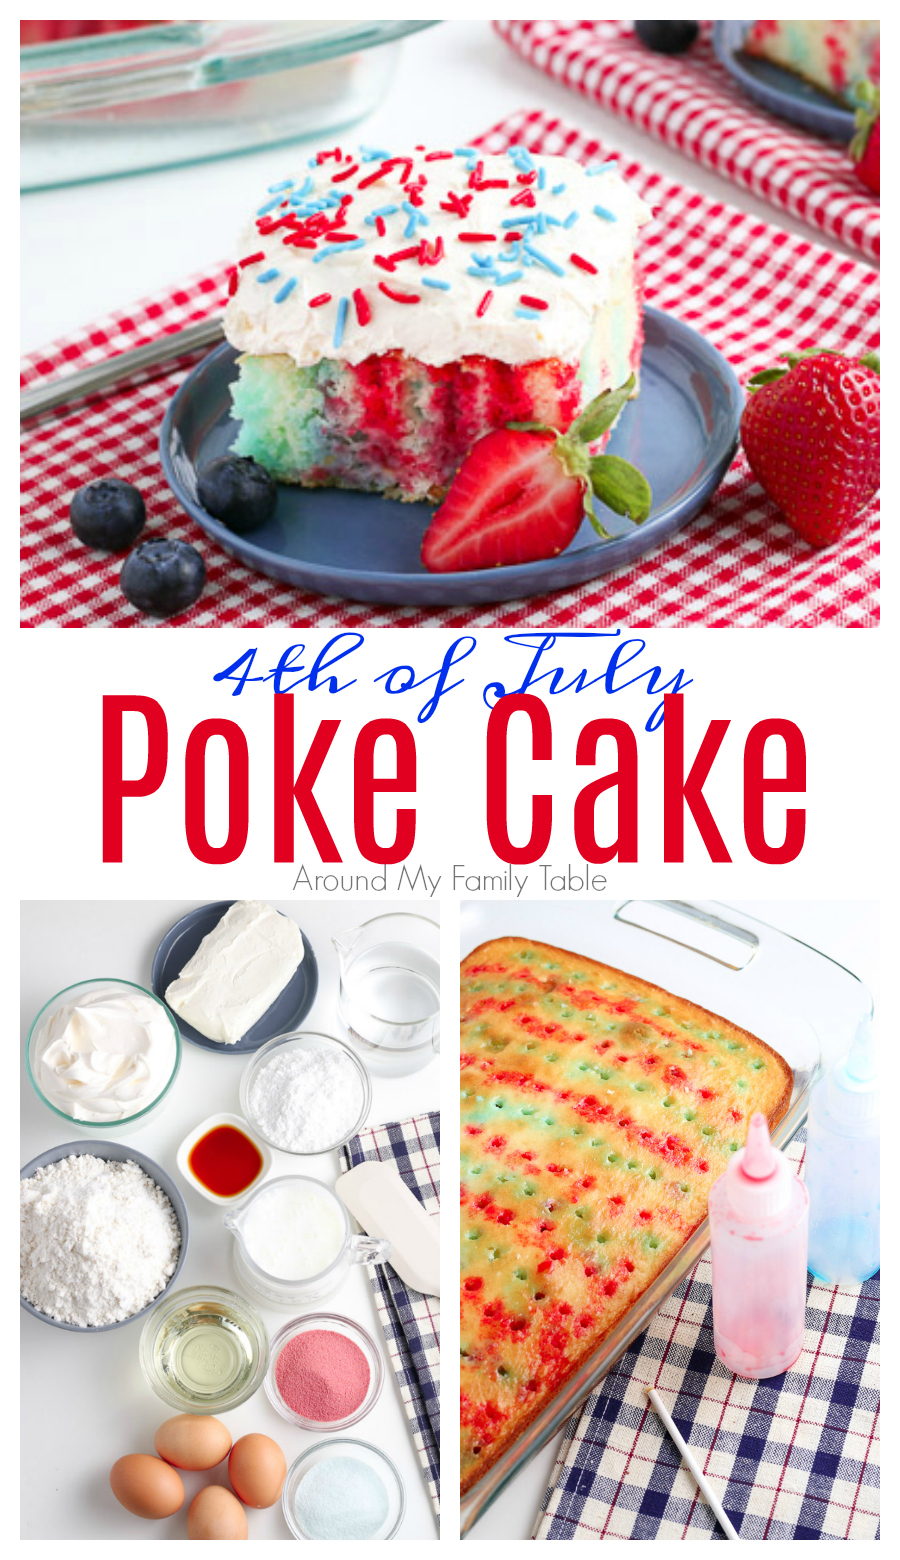 This festive 4th of July Poke Cake is perfect for a hot, summer day.  The red & blue jello gives a traditional poke cake a patriotic twist. It's great for parties all summer long from Memorial Day to 4th of July to Labor Day. via @slingmama